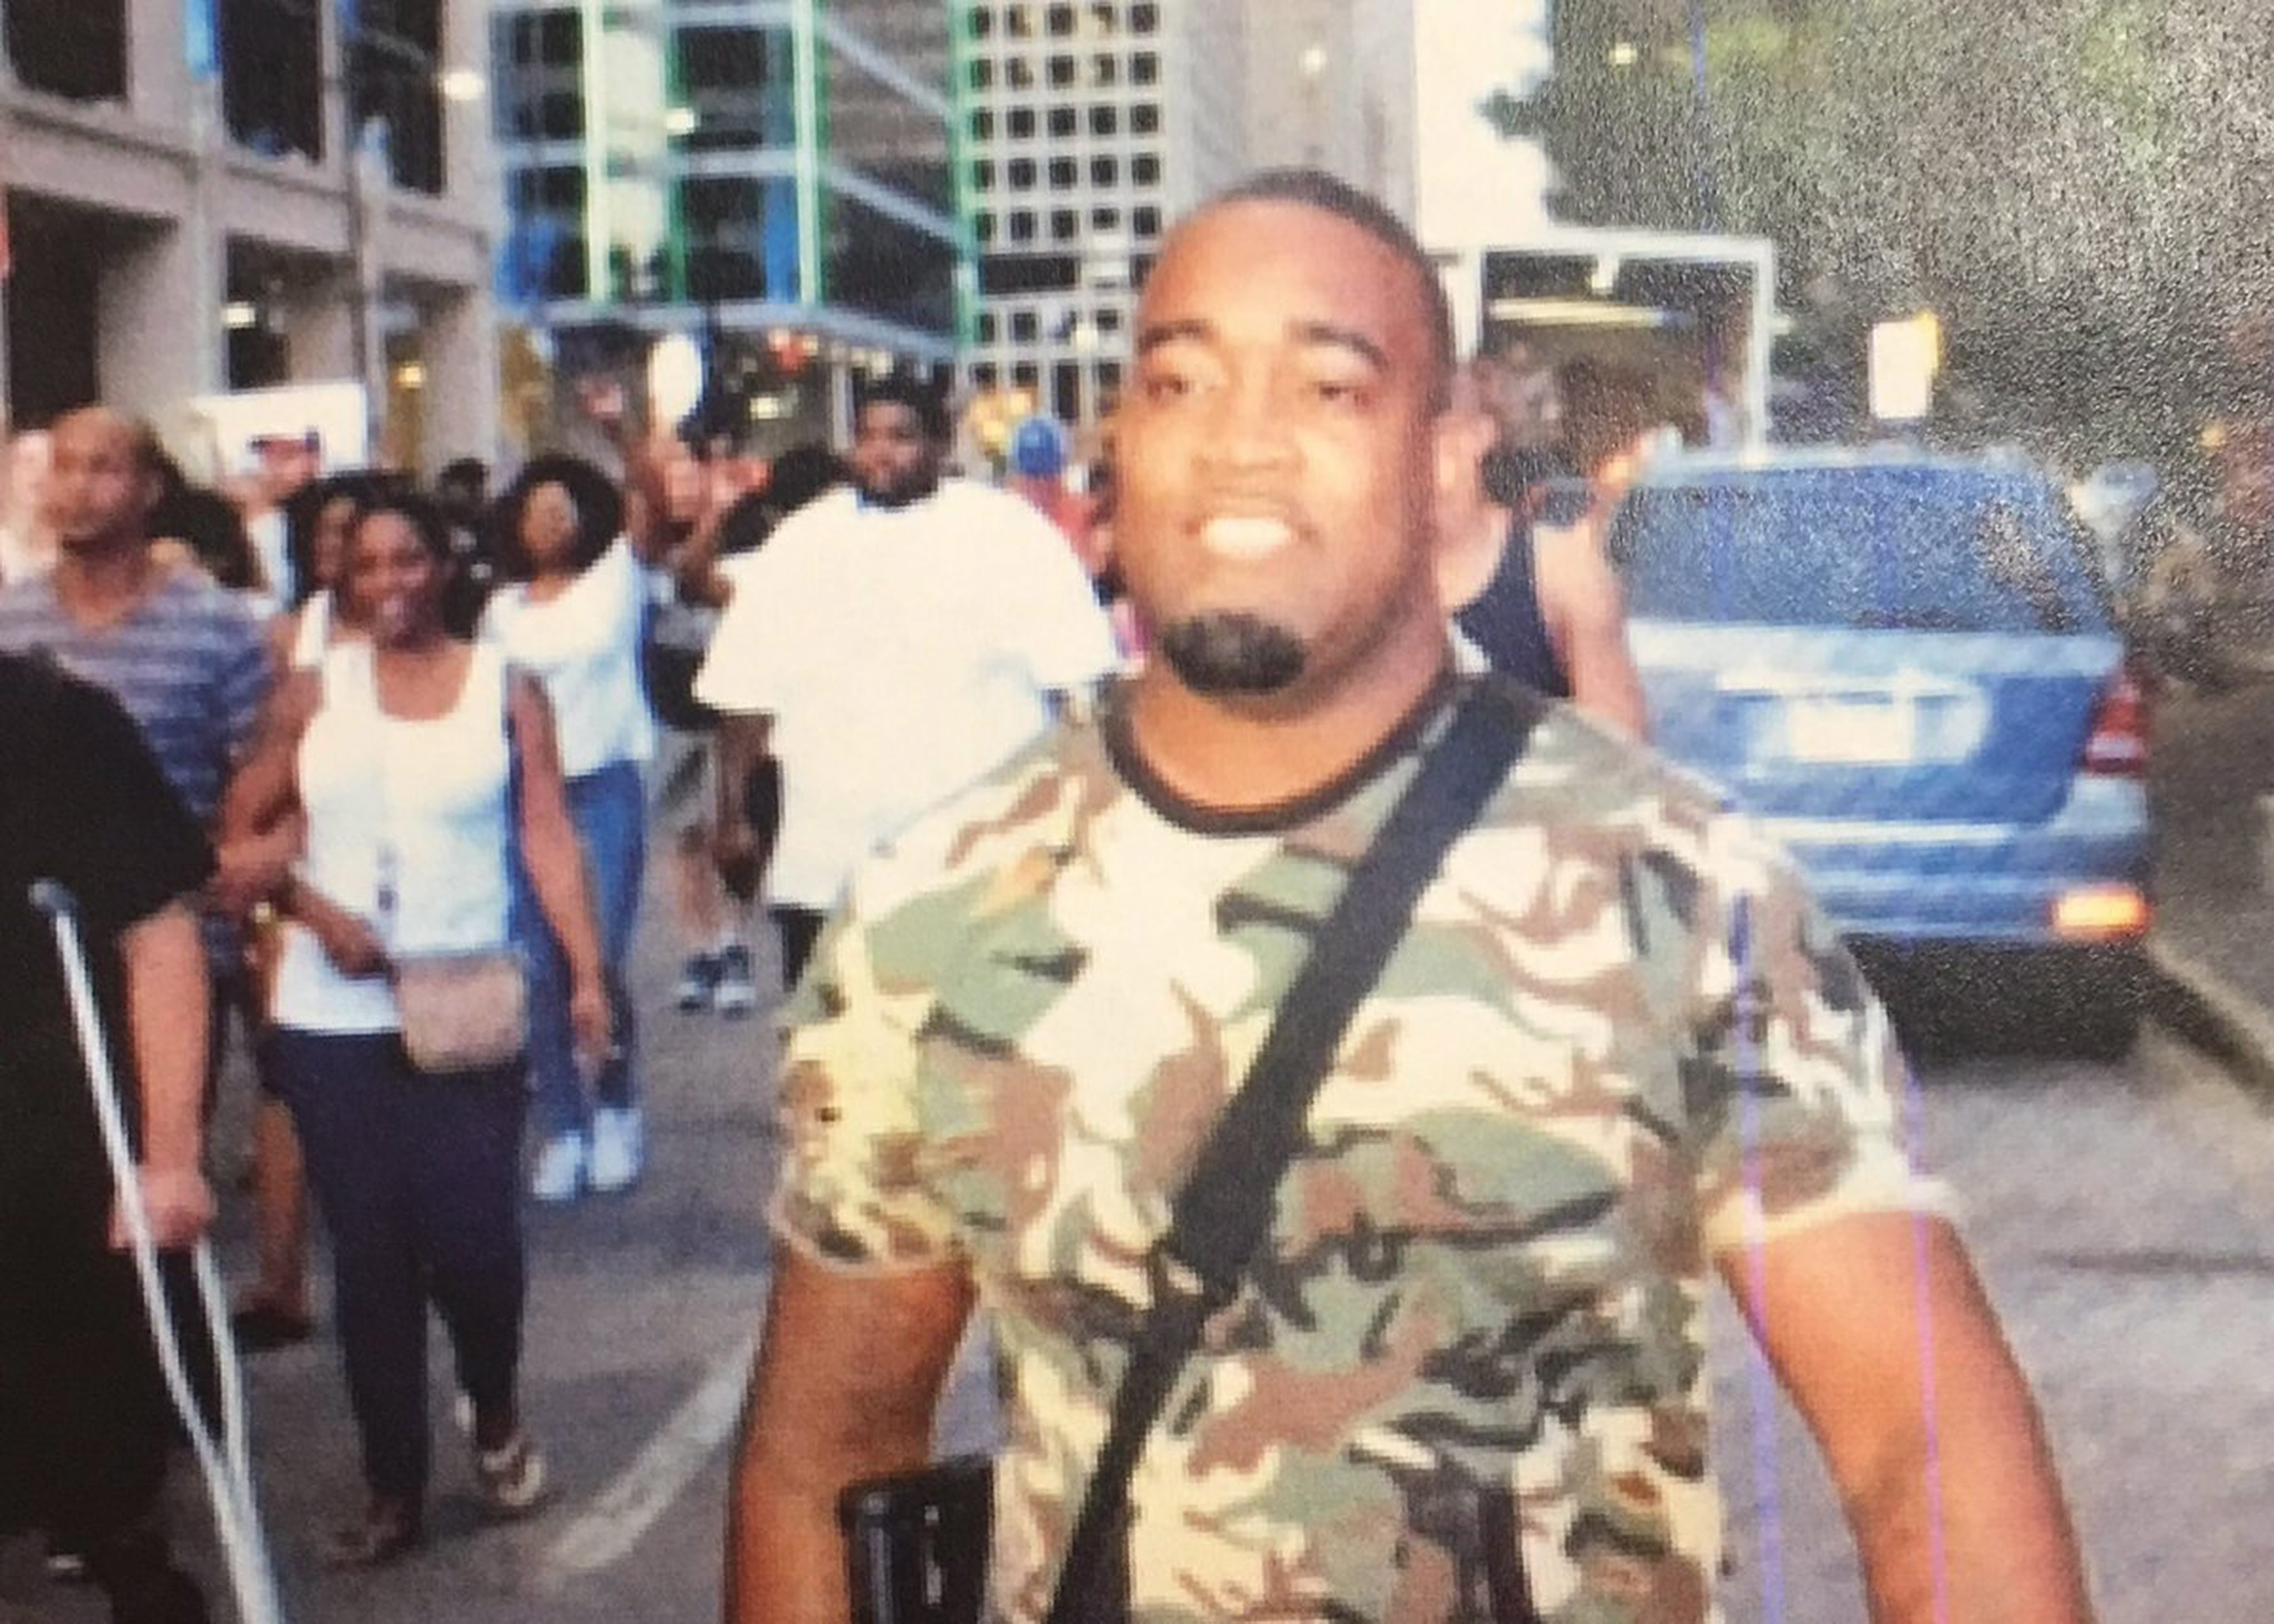 Dallas police shooting: Man wrongly accused of being suspect receives death threats